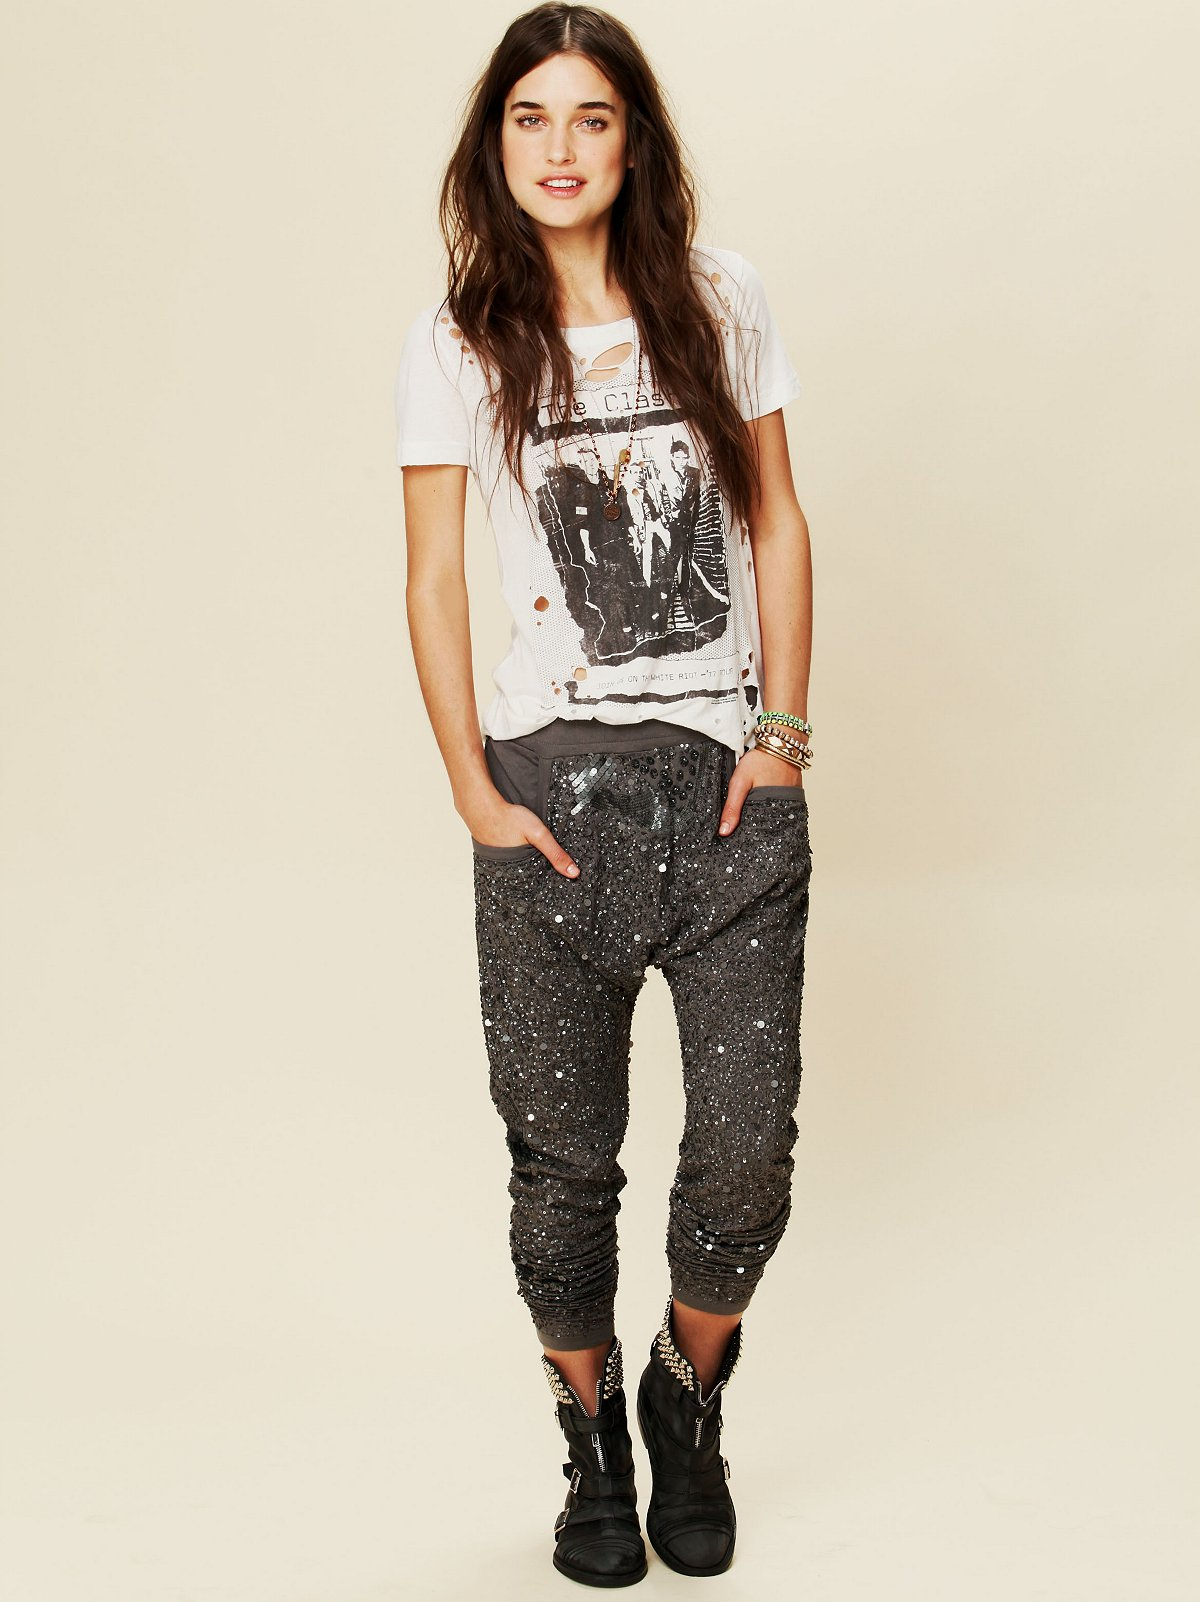 Mermaid Sequin Harem Pants